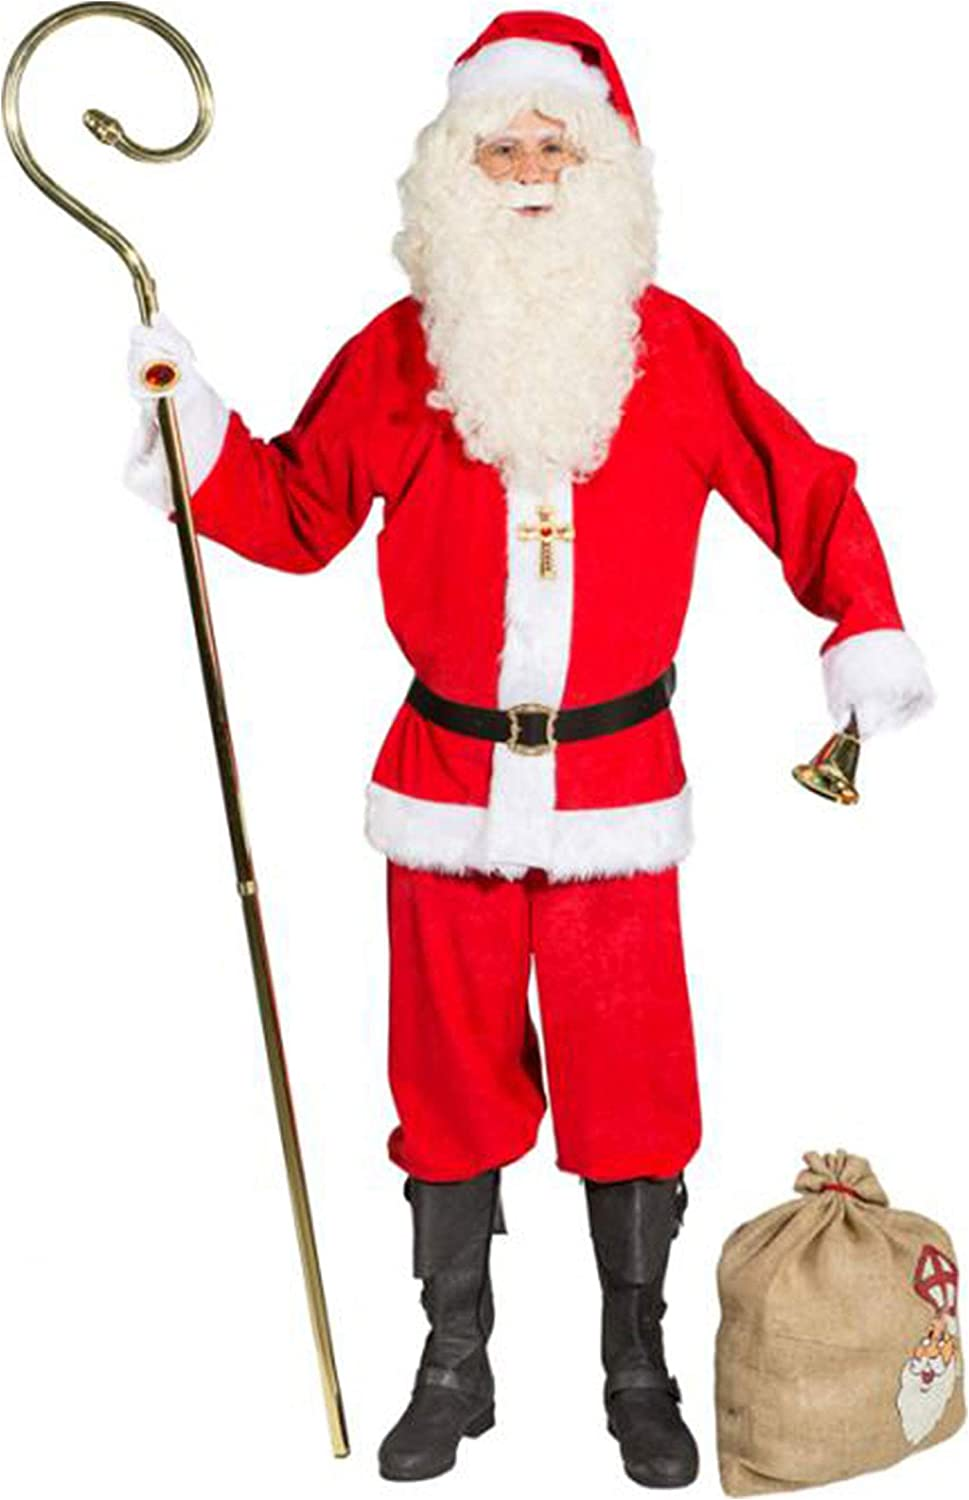 Orlob Nicholas rod deluxe metal 4 parts bishop walking stick Santa Claus